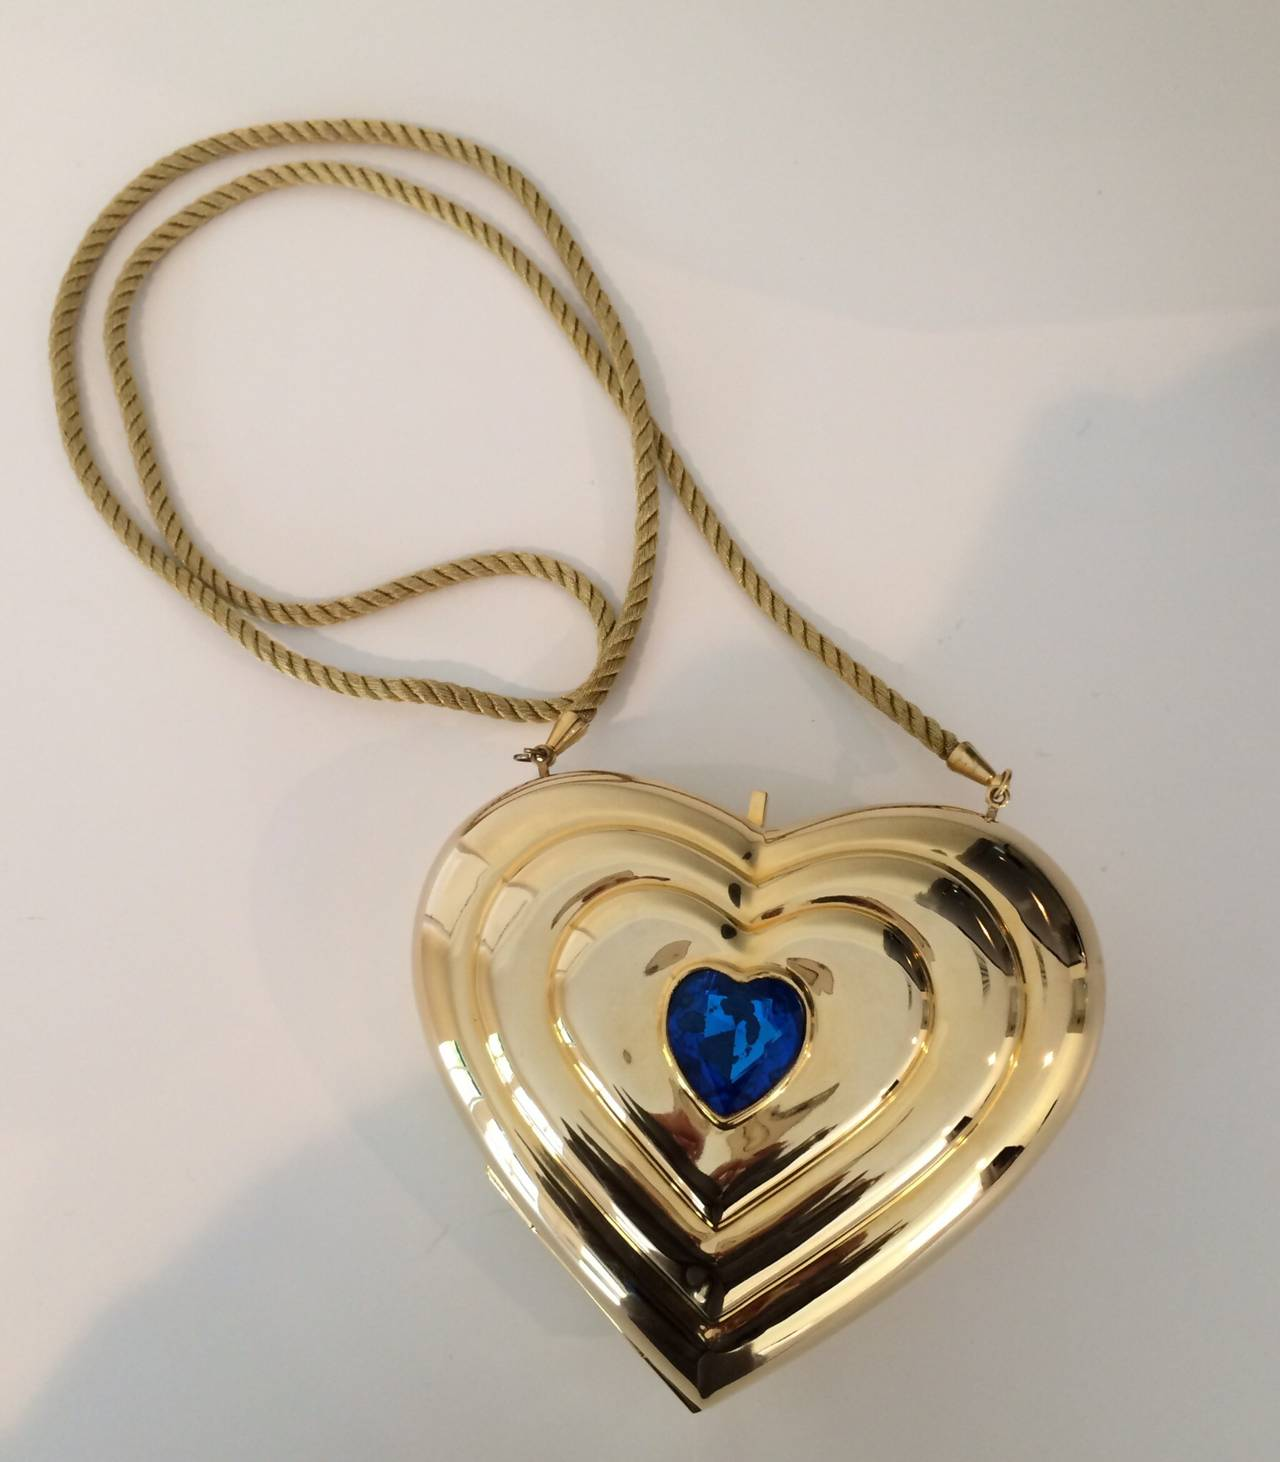 YSL / Yves Saint Laurent Heart Shaped Gold & Sapphire Crystal Minaudiere Bag 3